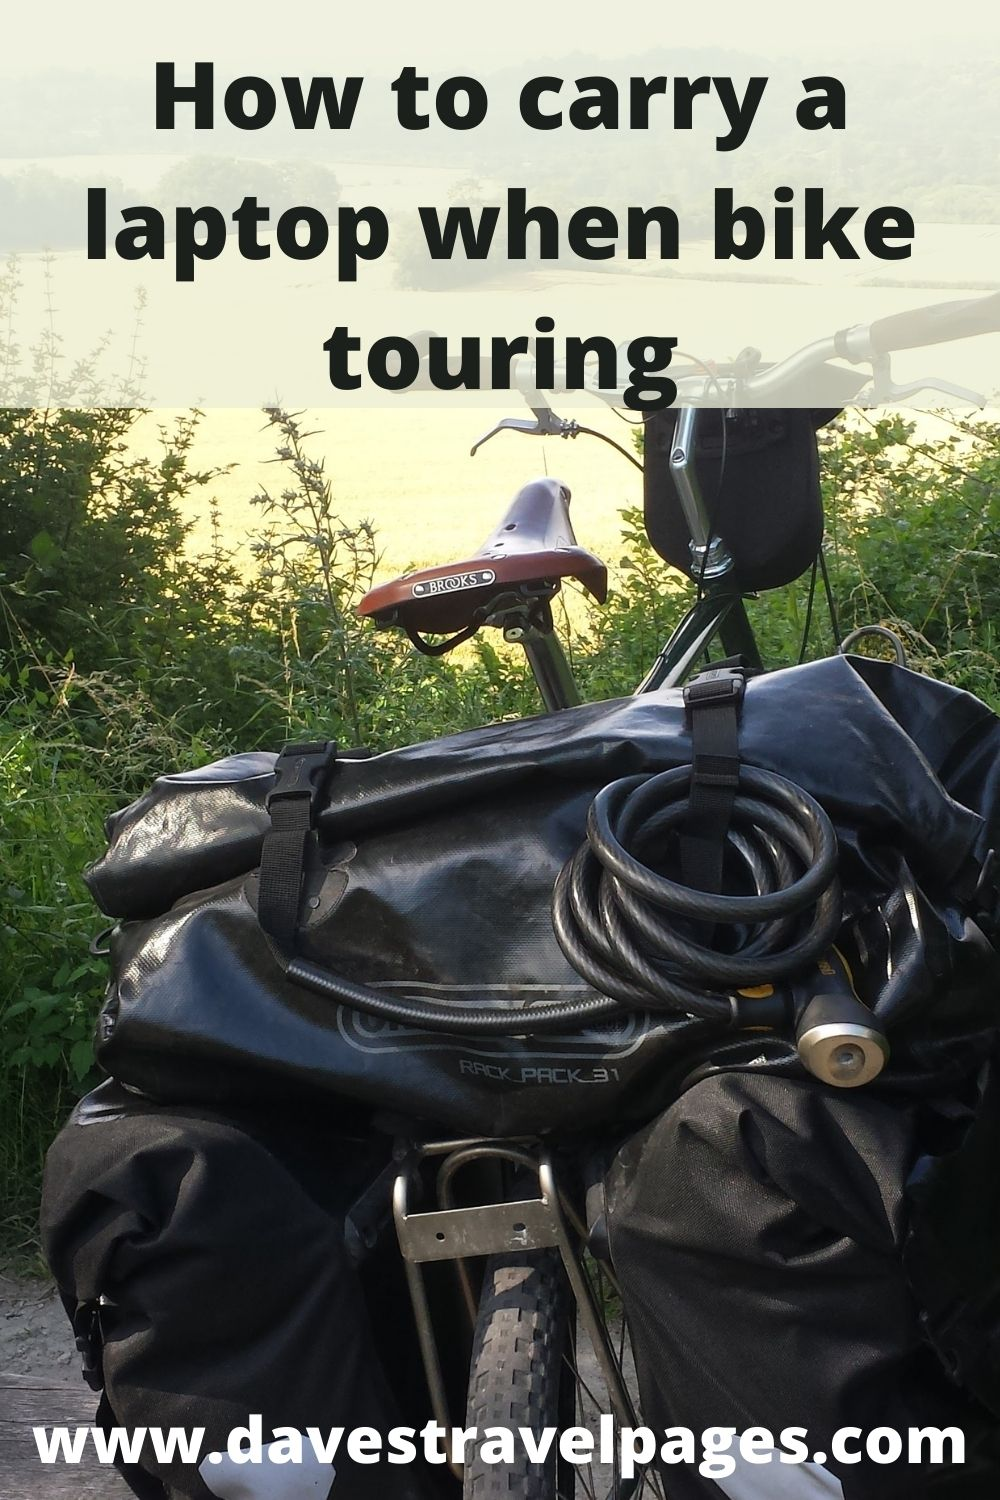 How to safely carry a laptop when bicycle touring